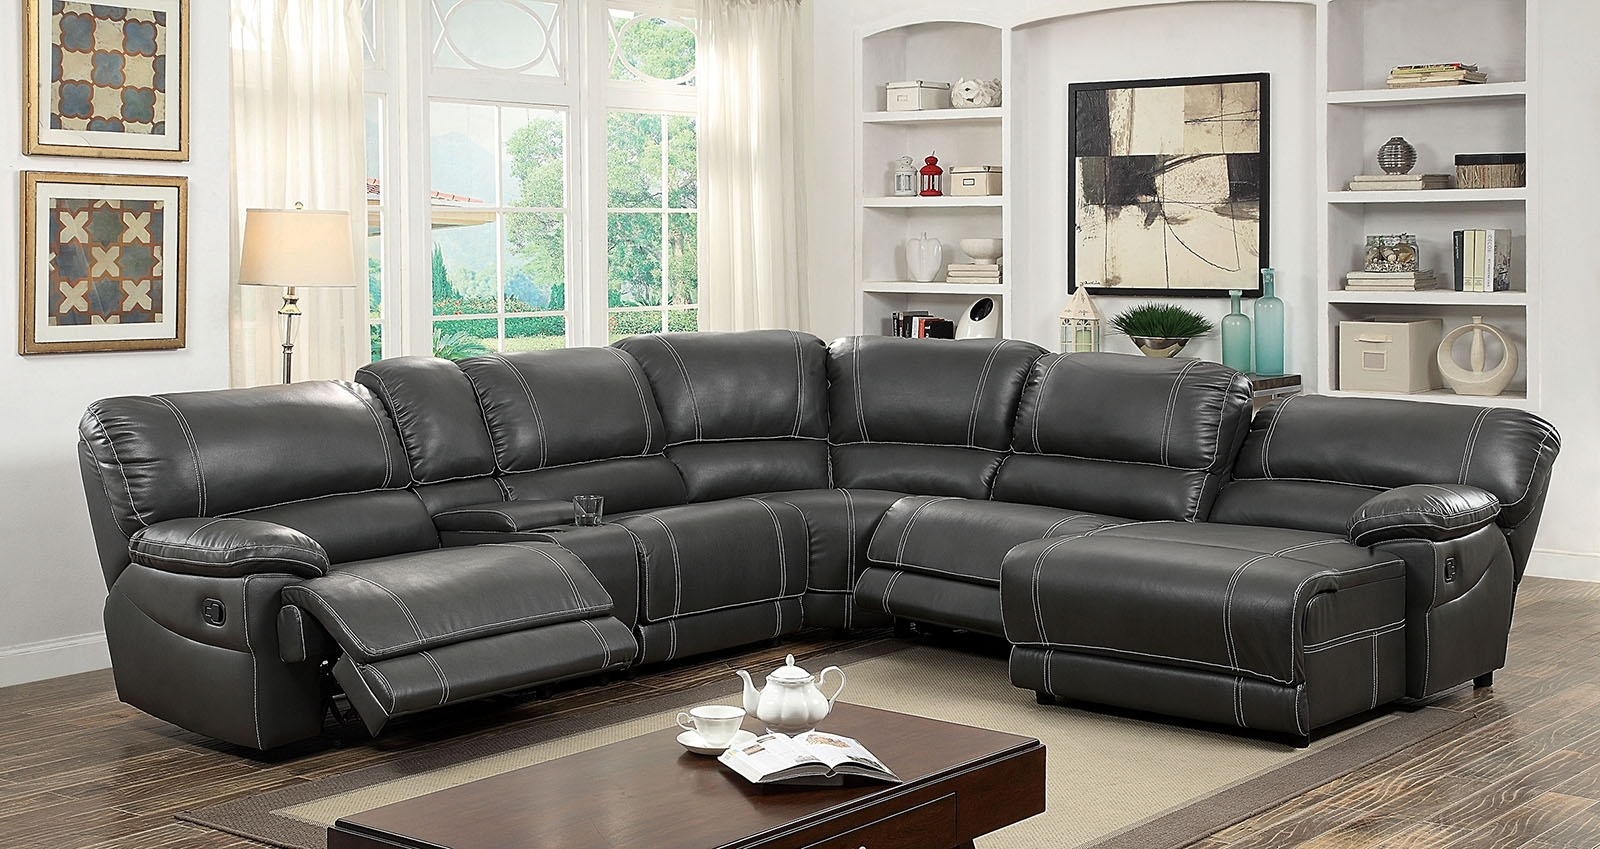 Sectional Sofas With Chaise And Recliner Intended For 2017 Furniture Of America 6131Gy Gray Reclining Chaise Console (View 11 of 15)